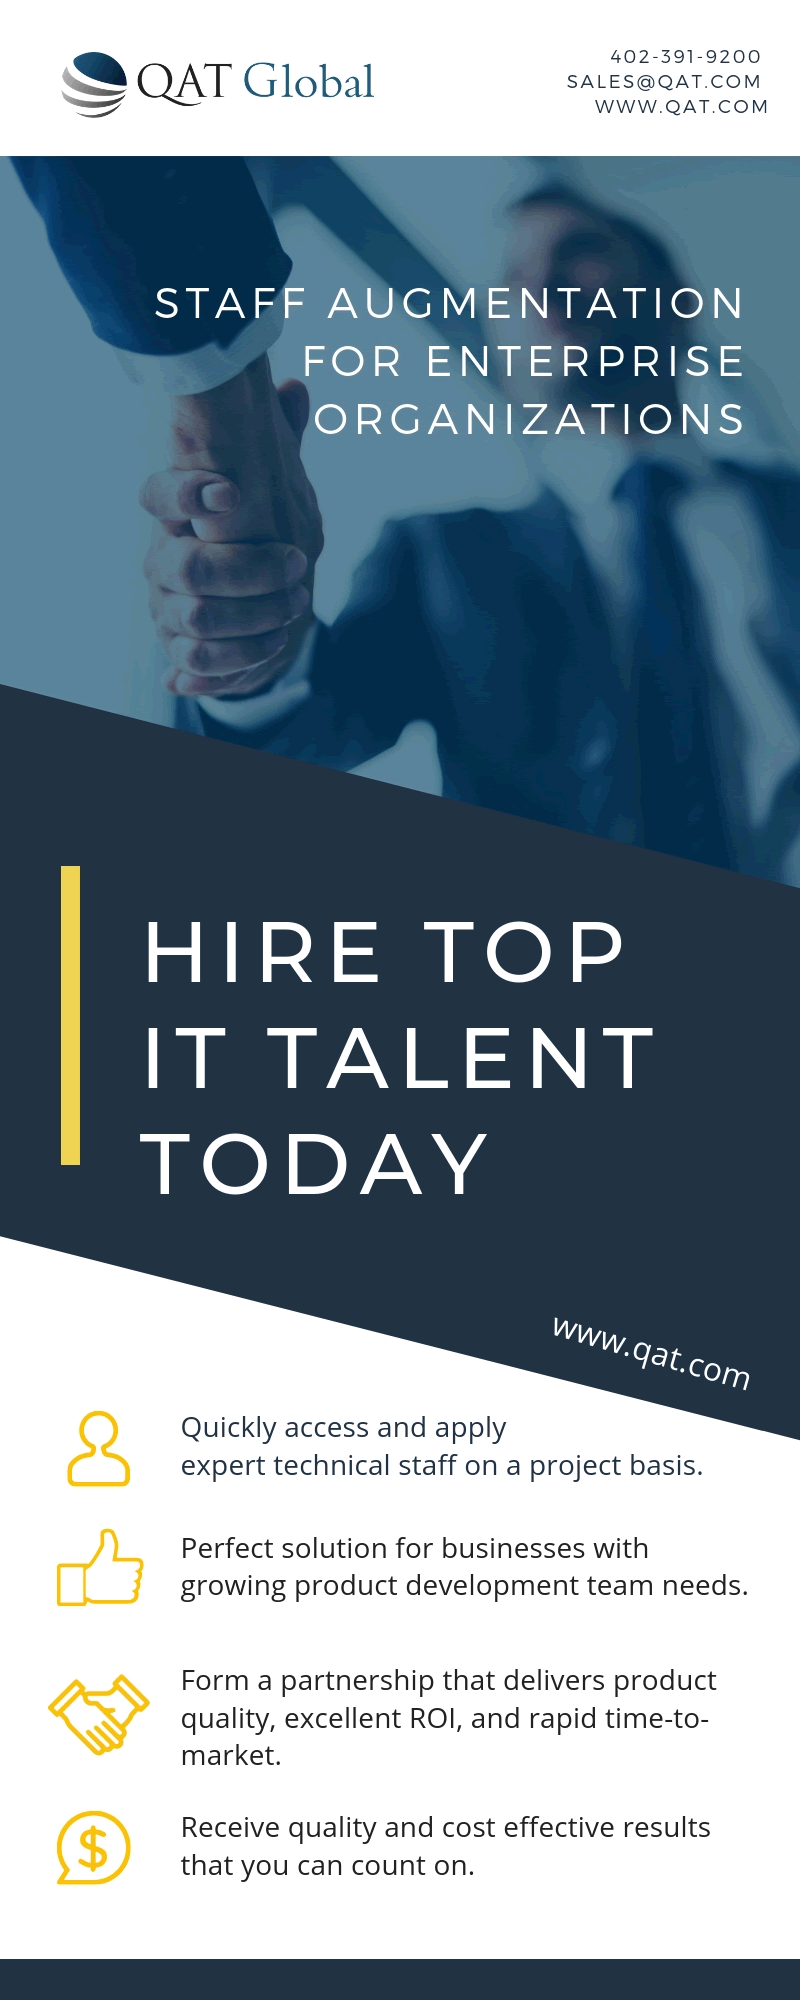 Hire top IT talent